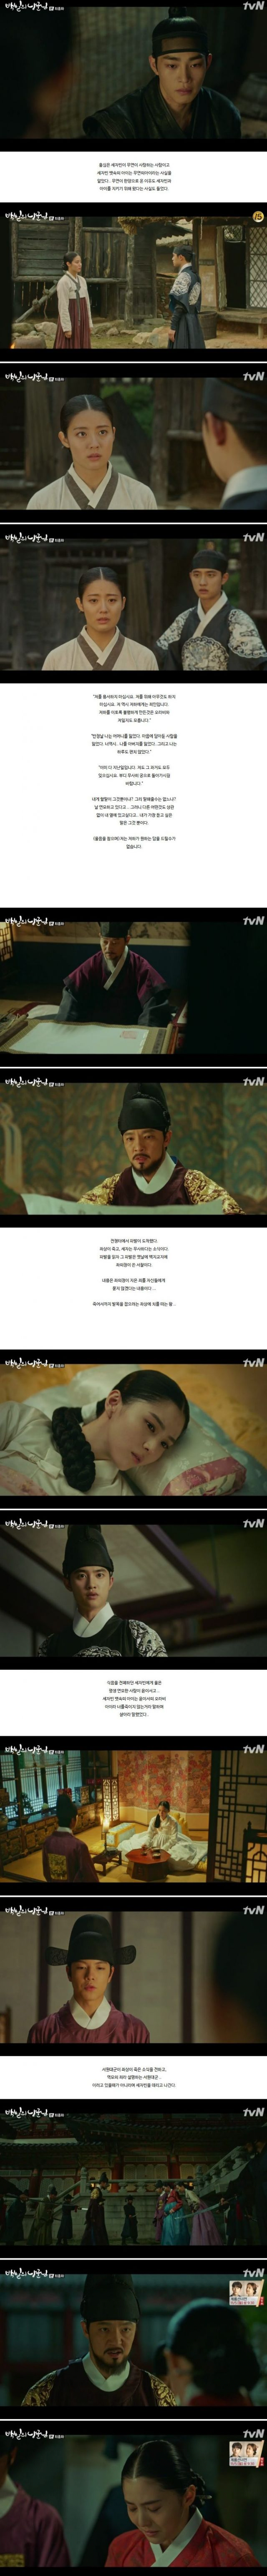 100 Days My Prince Episode 16 : prince, episode, Korean, Drama, Spoiler], Prince', Final, Episode, Screenshots, Added, HanCinema, Movie, Database